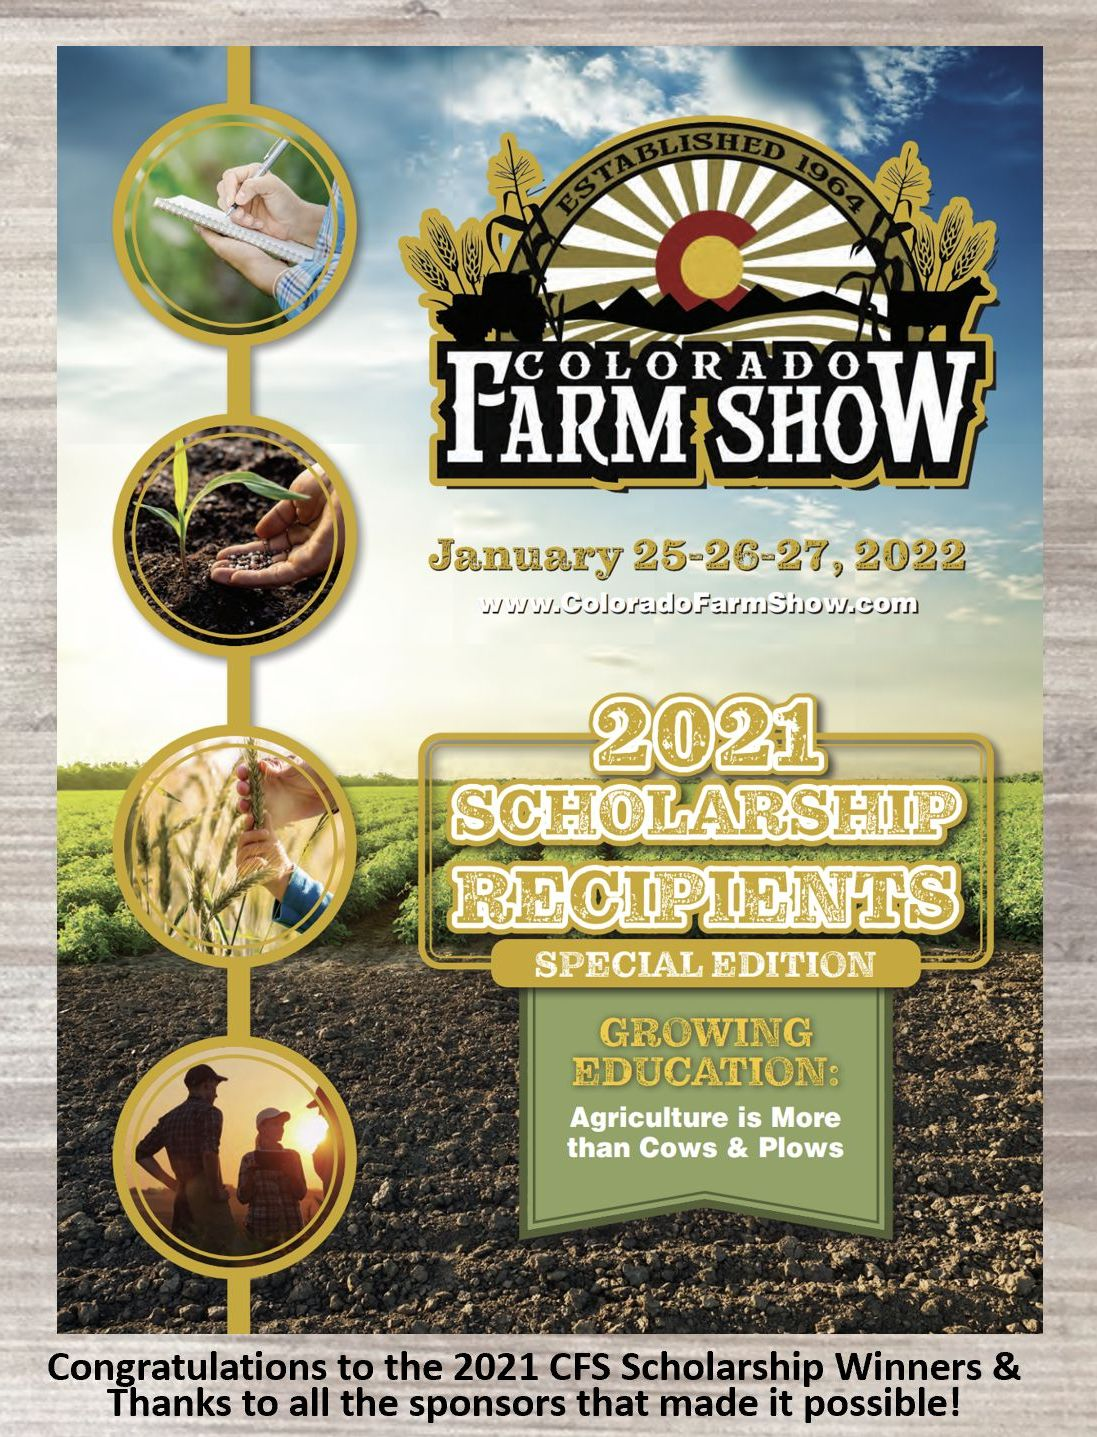 Check out the 2021 Colorado Farm Show Scholarship Recipient SPECIAL EDITION Brochure, digitally!